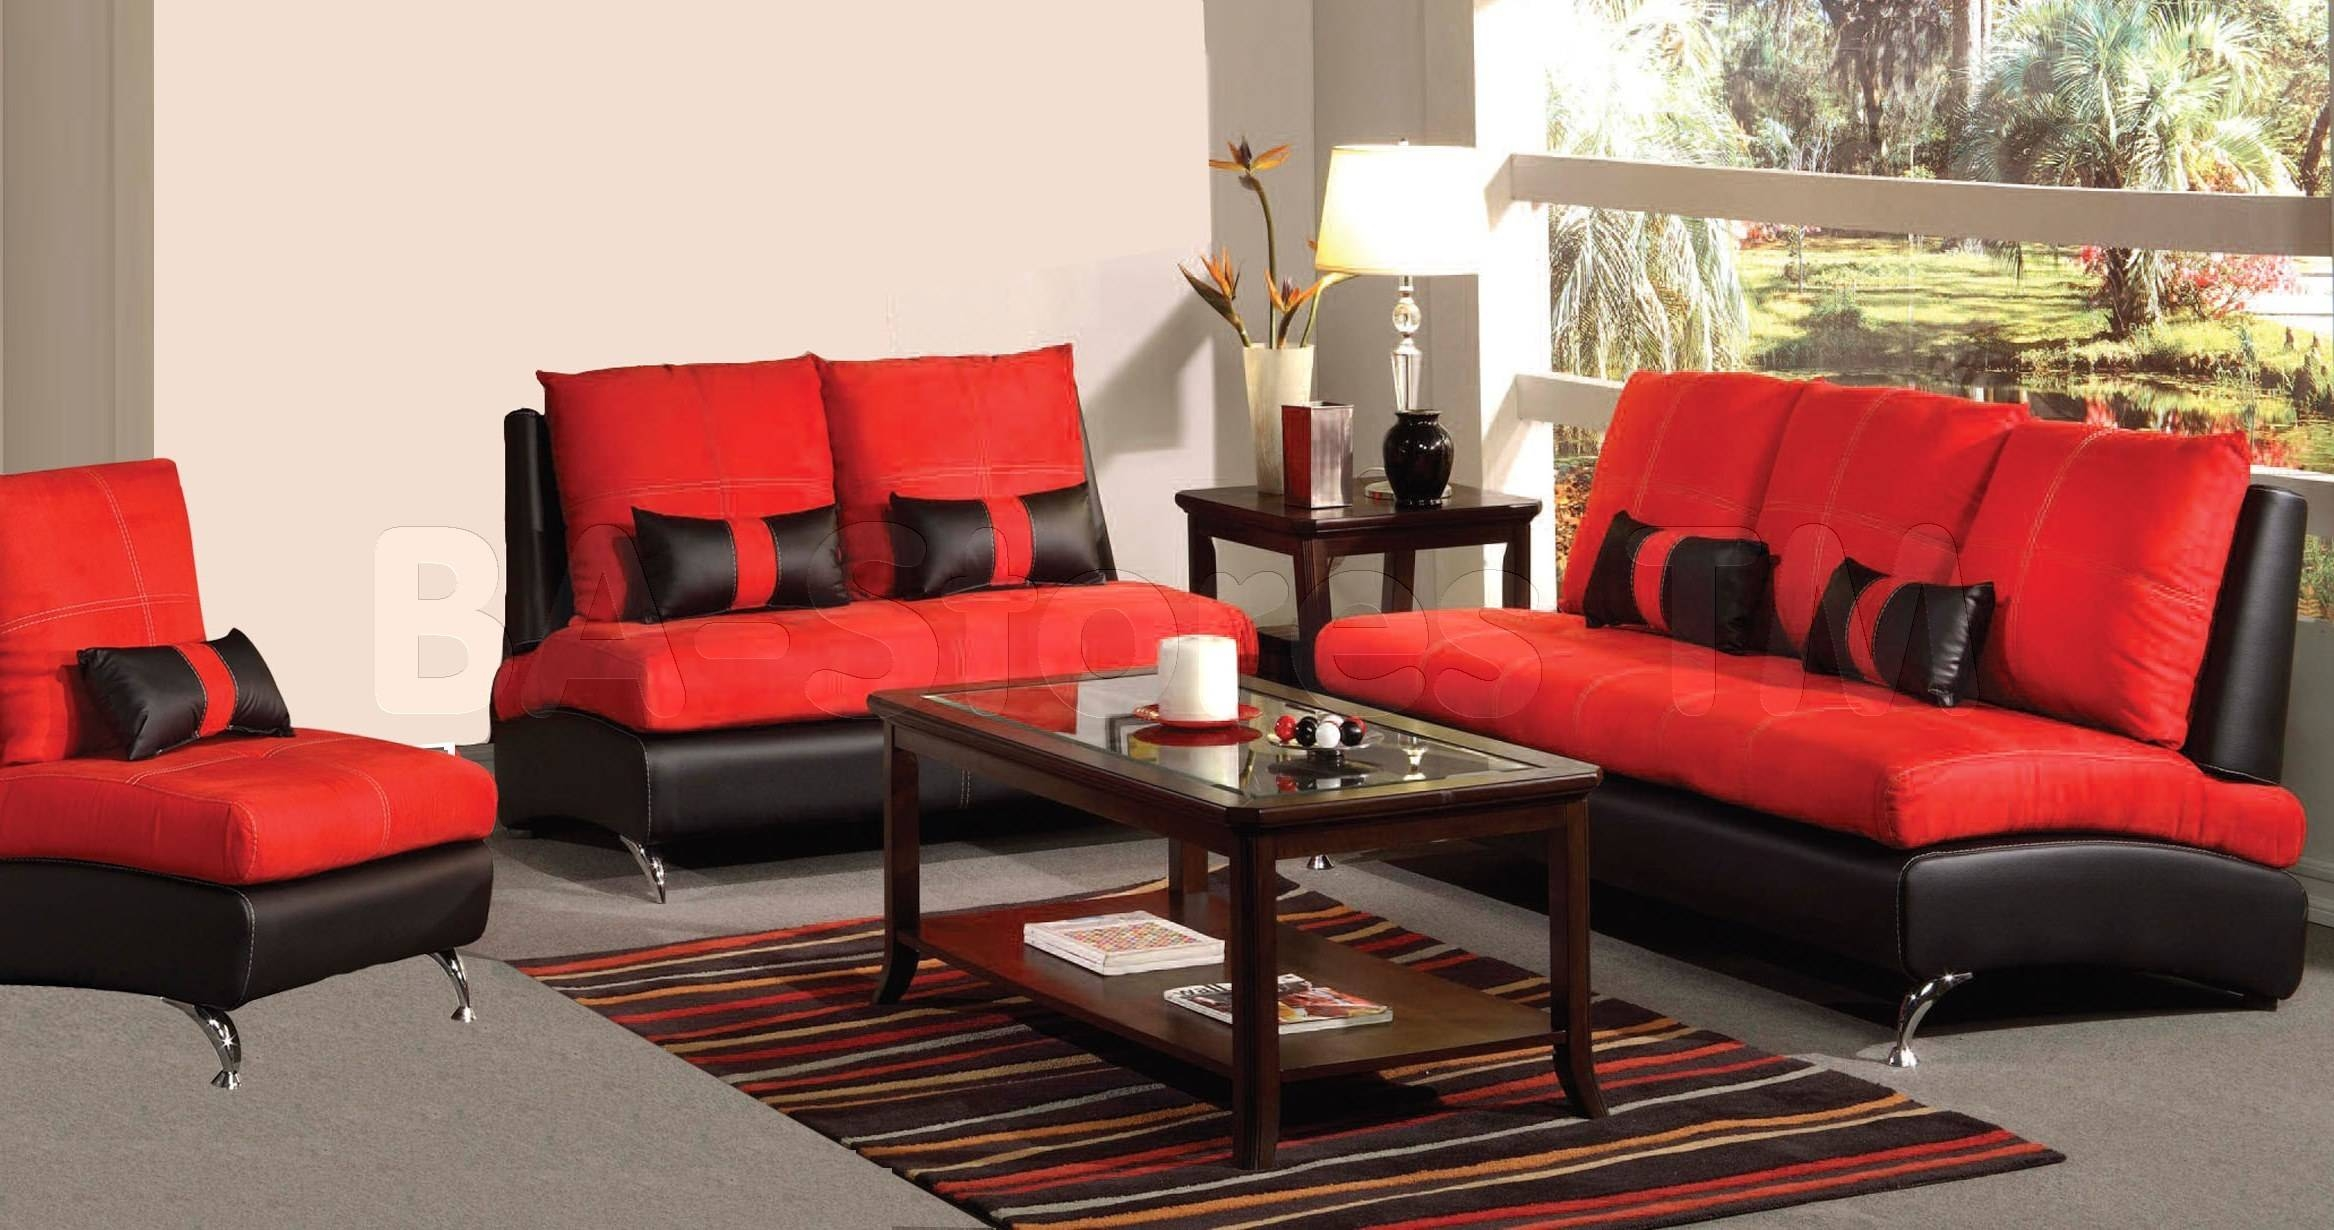 Sofa Sets: Jolie 3 Pc Sofa Set | Red Af-51745-Set/6 - Ba Stores intended for Black And Red Sofas (Image 15 of 15)